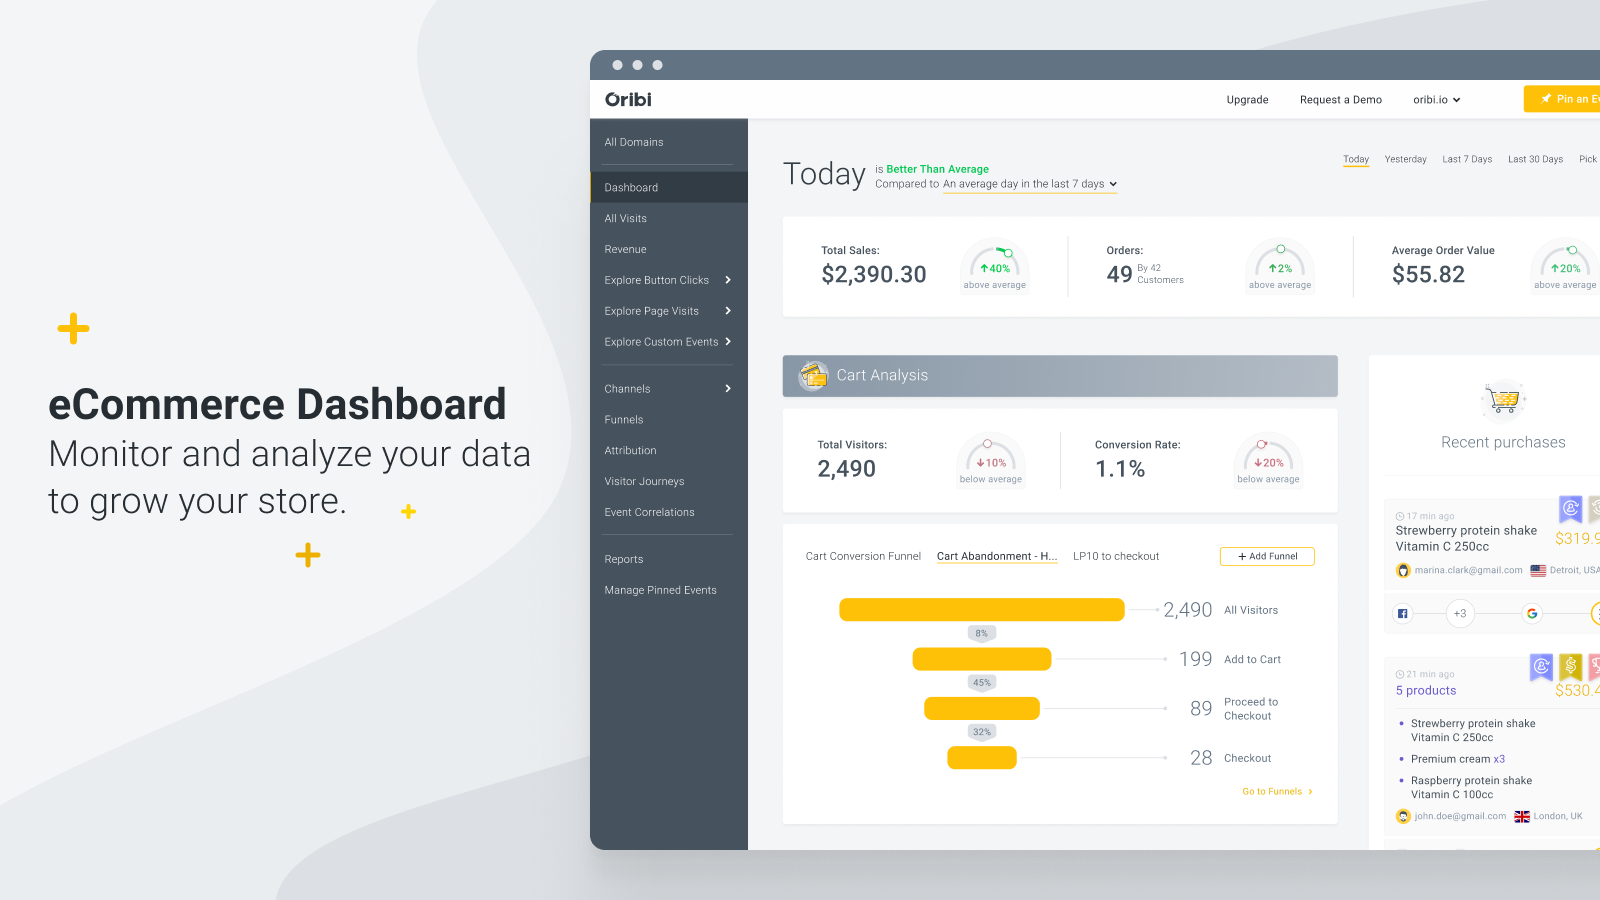 Monitor and analyze your data to grow your store